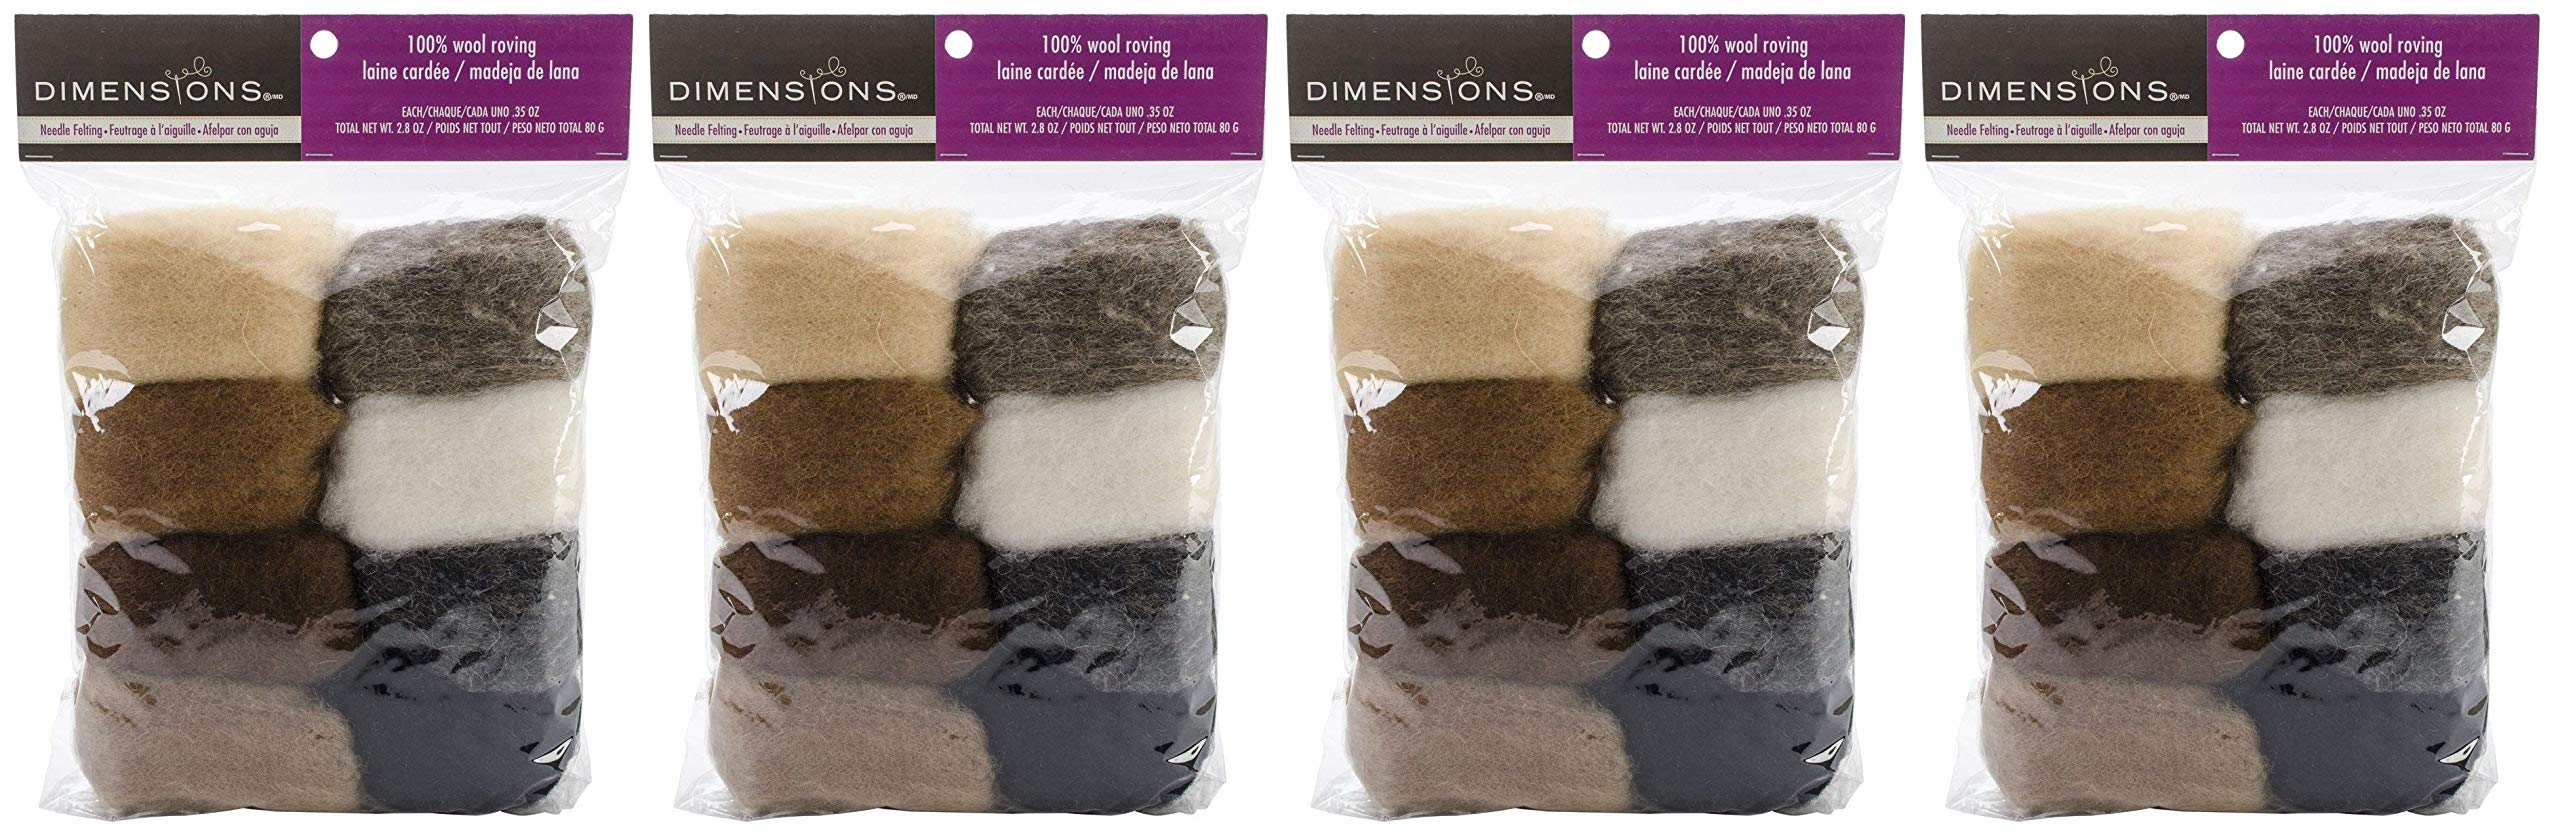 Dimensions Needlecrafts Natural Earth Tone Wool Roving for Needle Felting, 8 pack, 80g (Fоur Paсk)